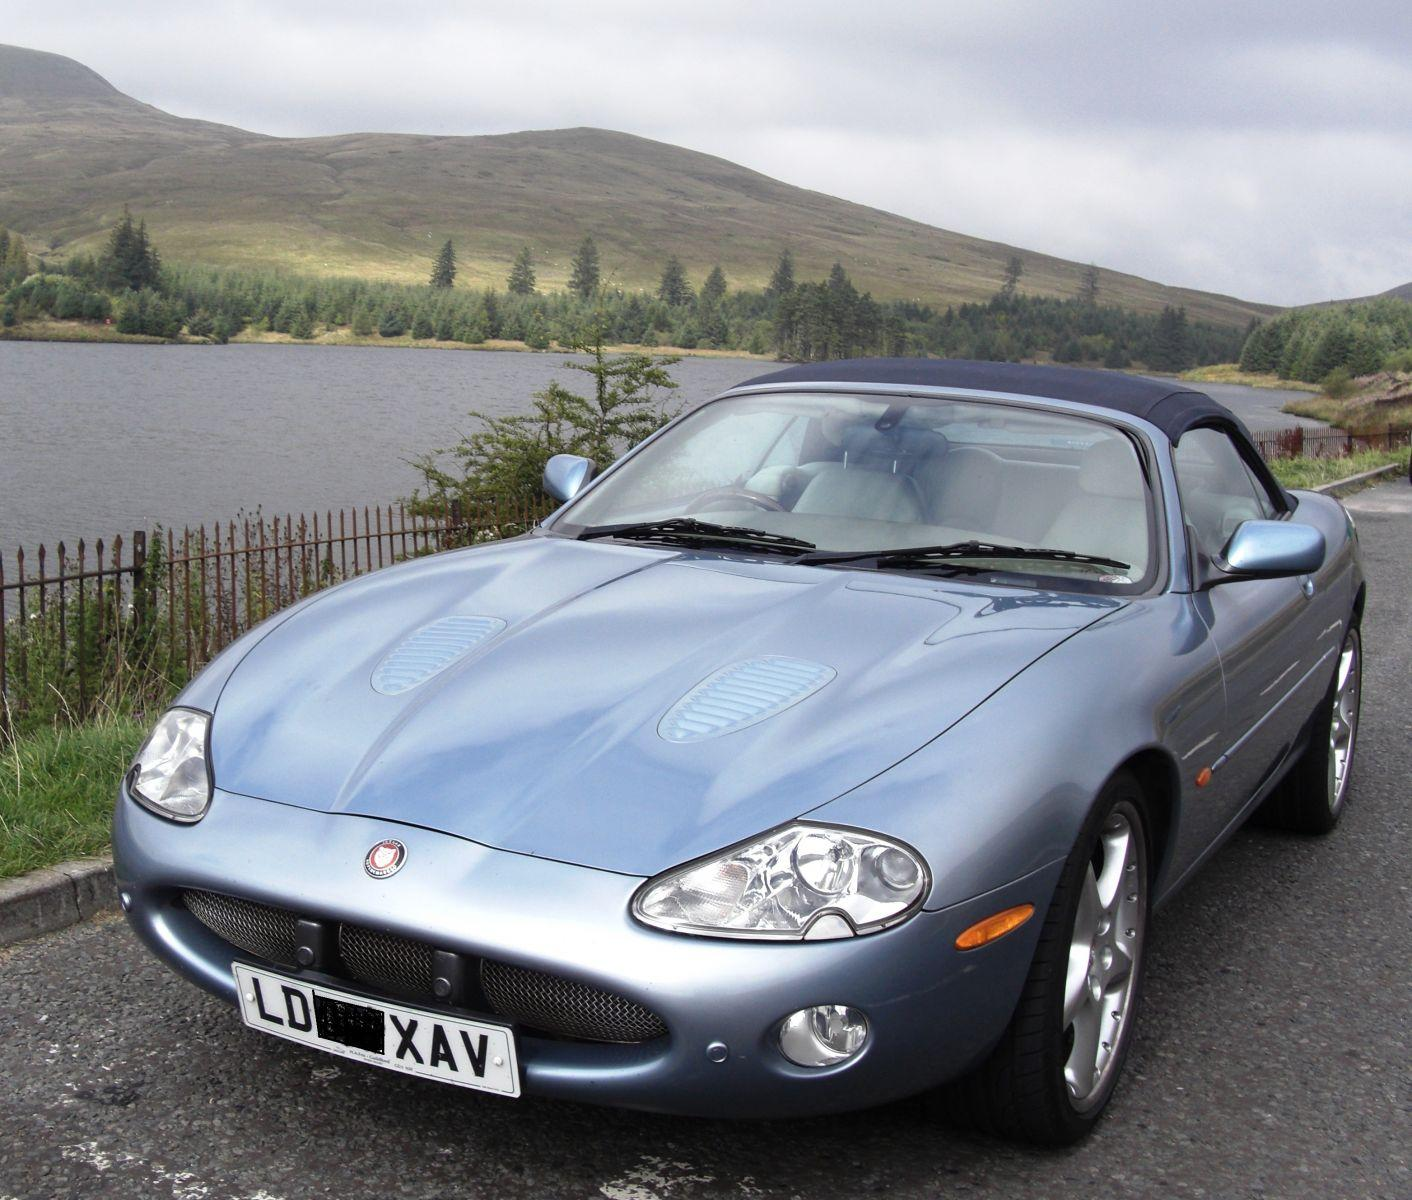 XKR 01A